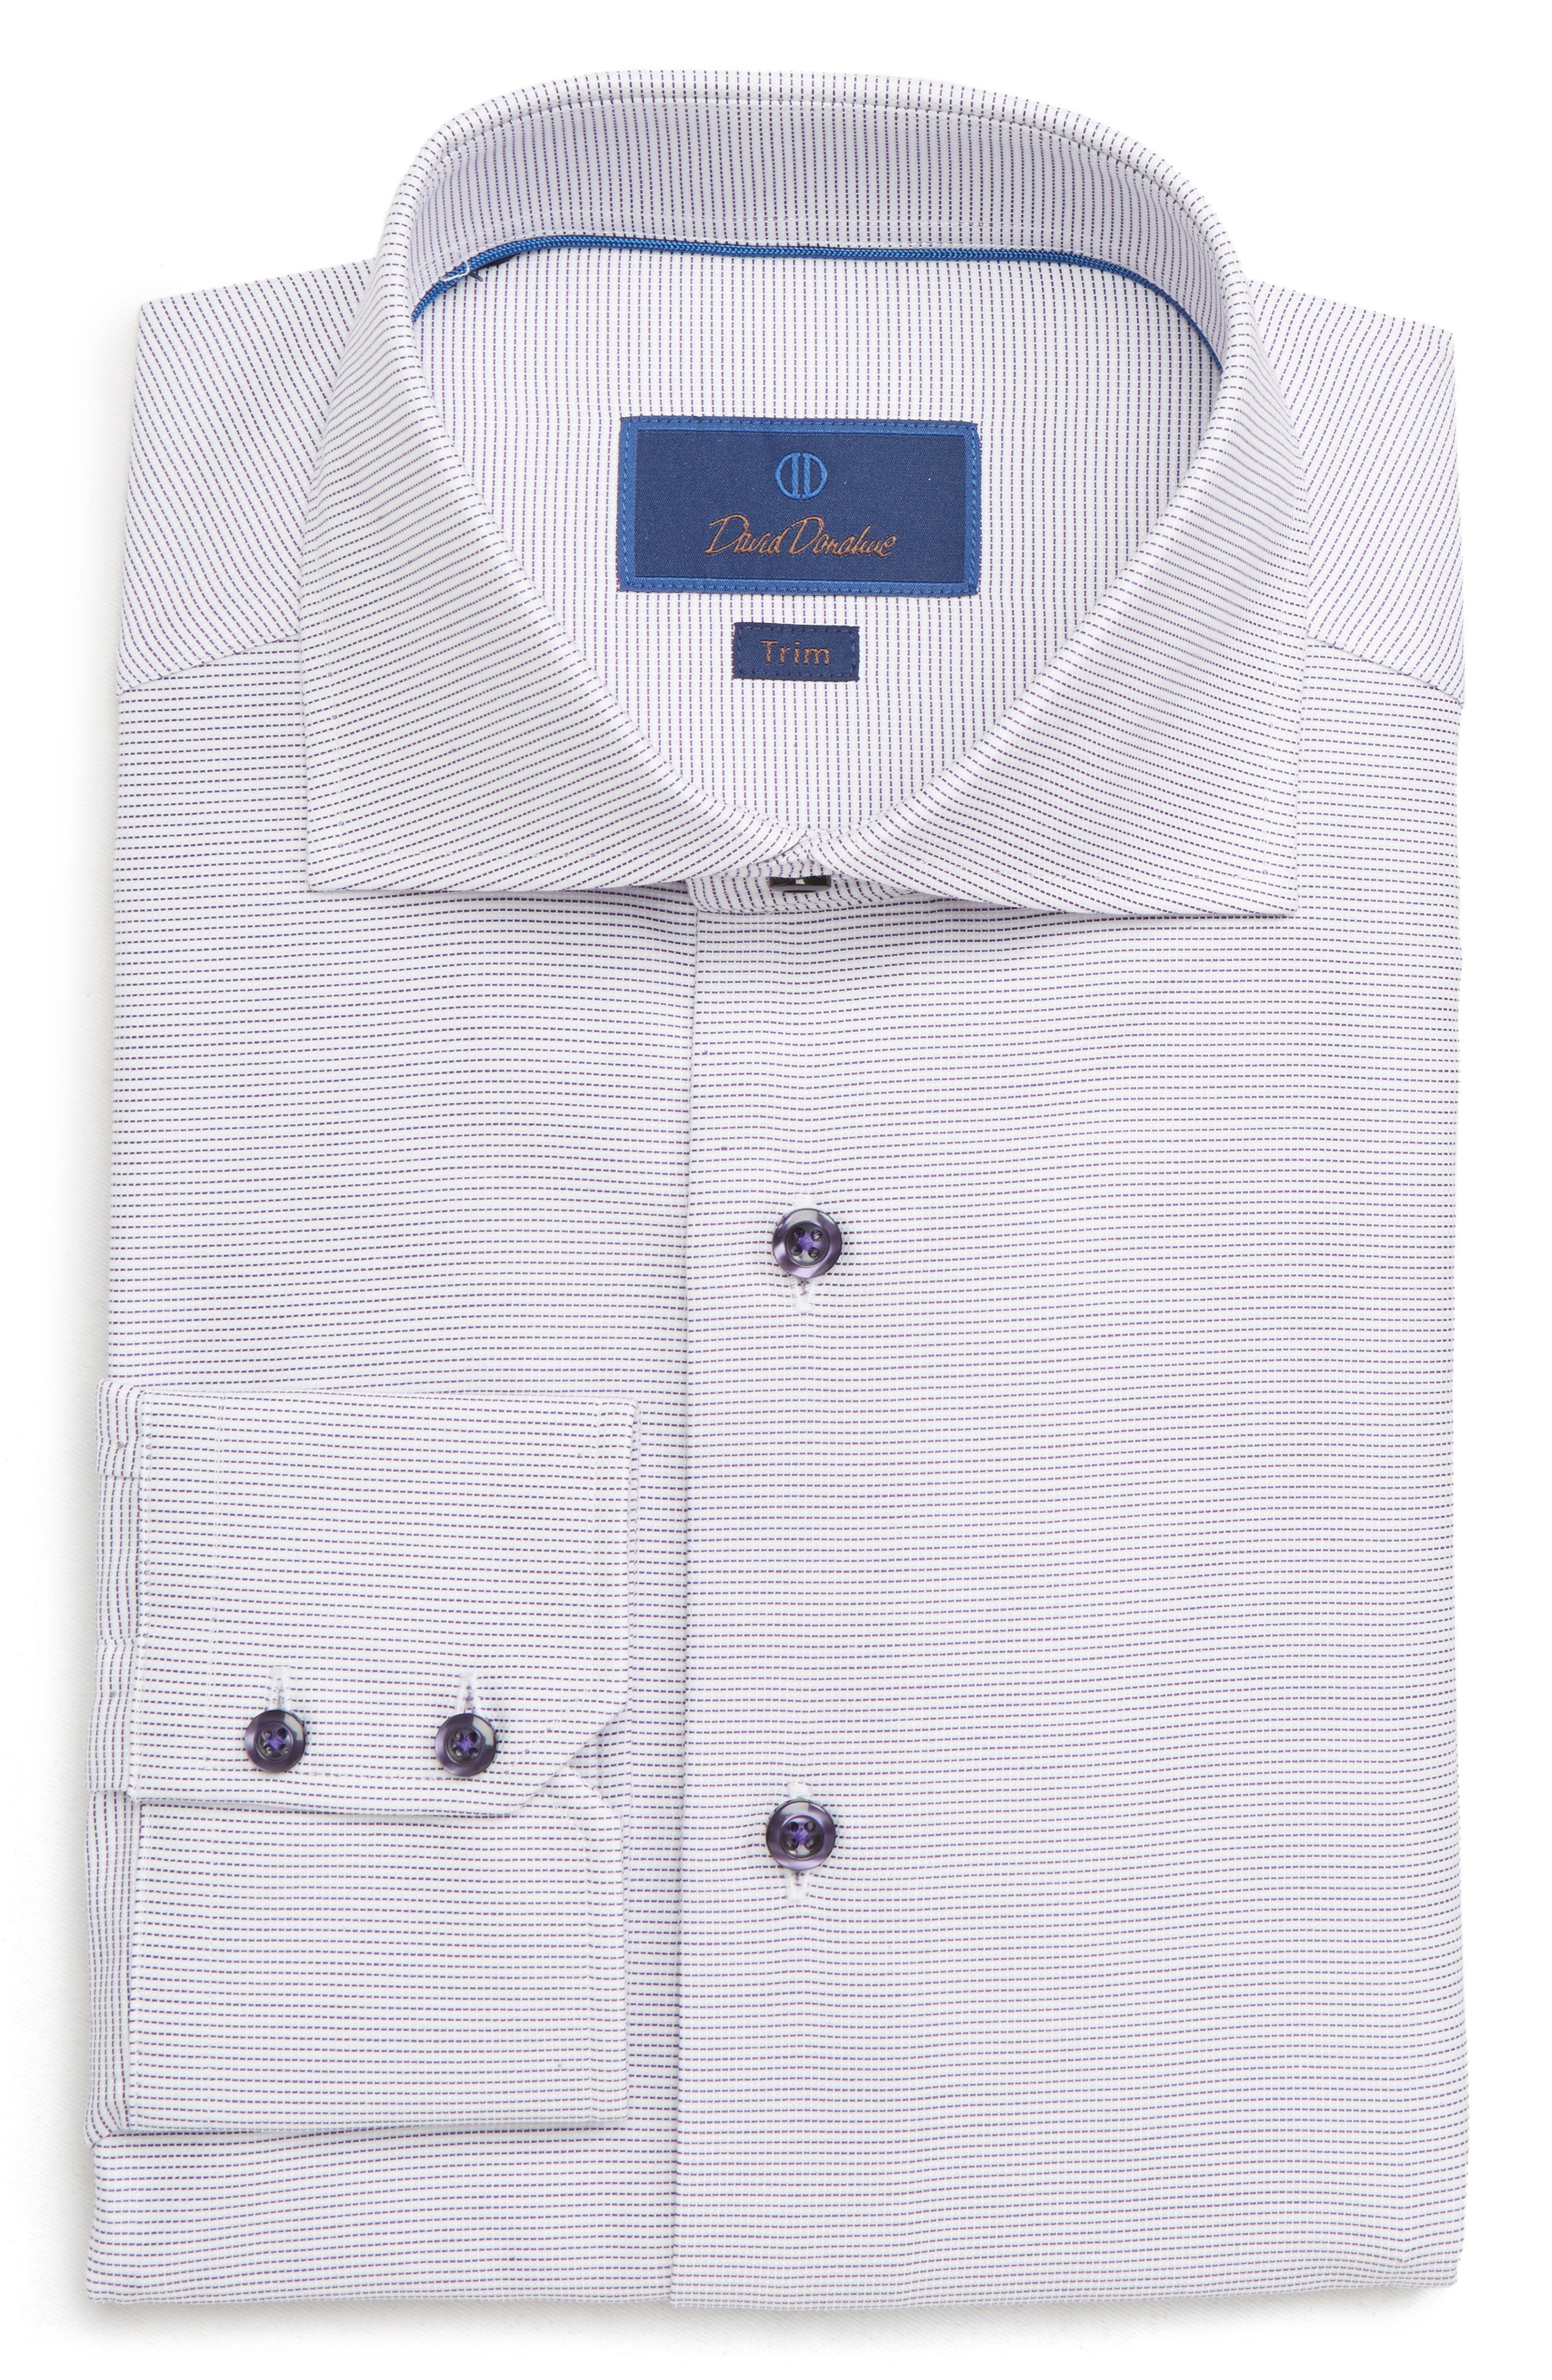 DAVID DONAHUE Men'S Trim-Fit Dobby Weave Dress Shirt in Lilac